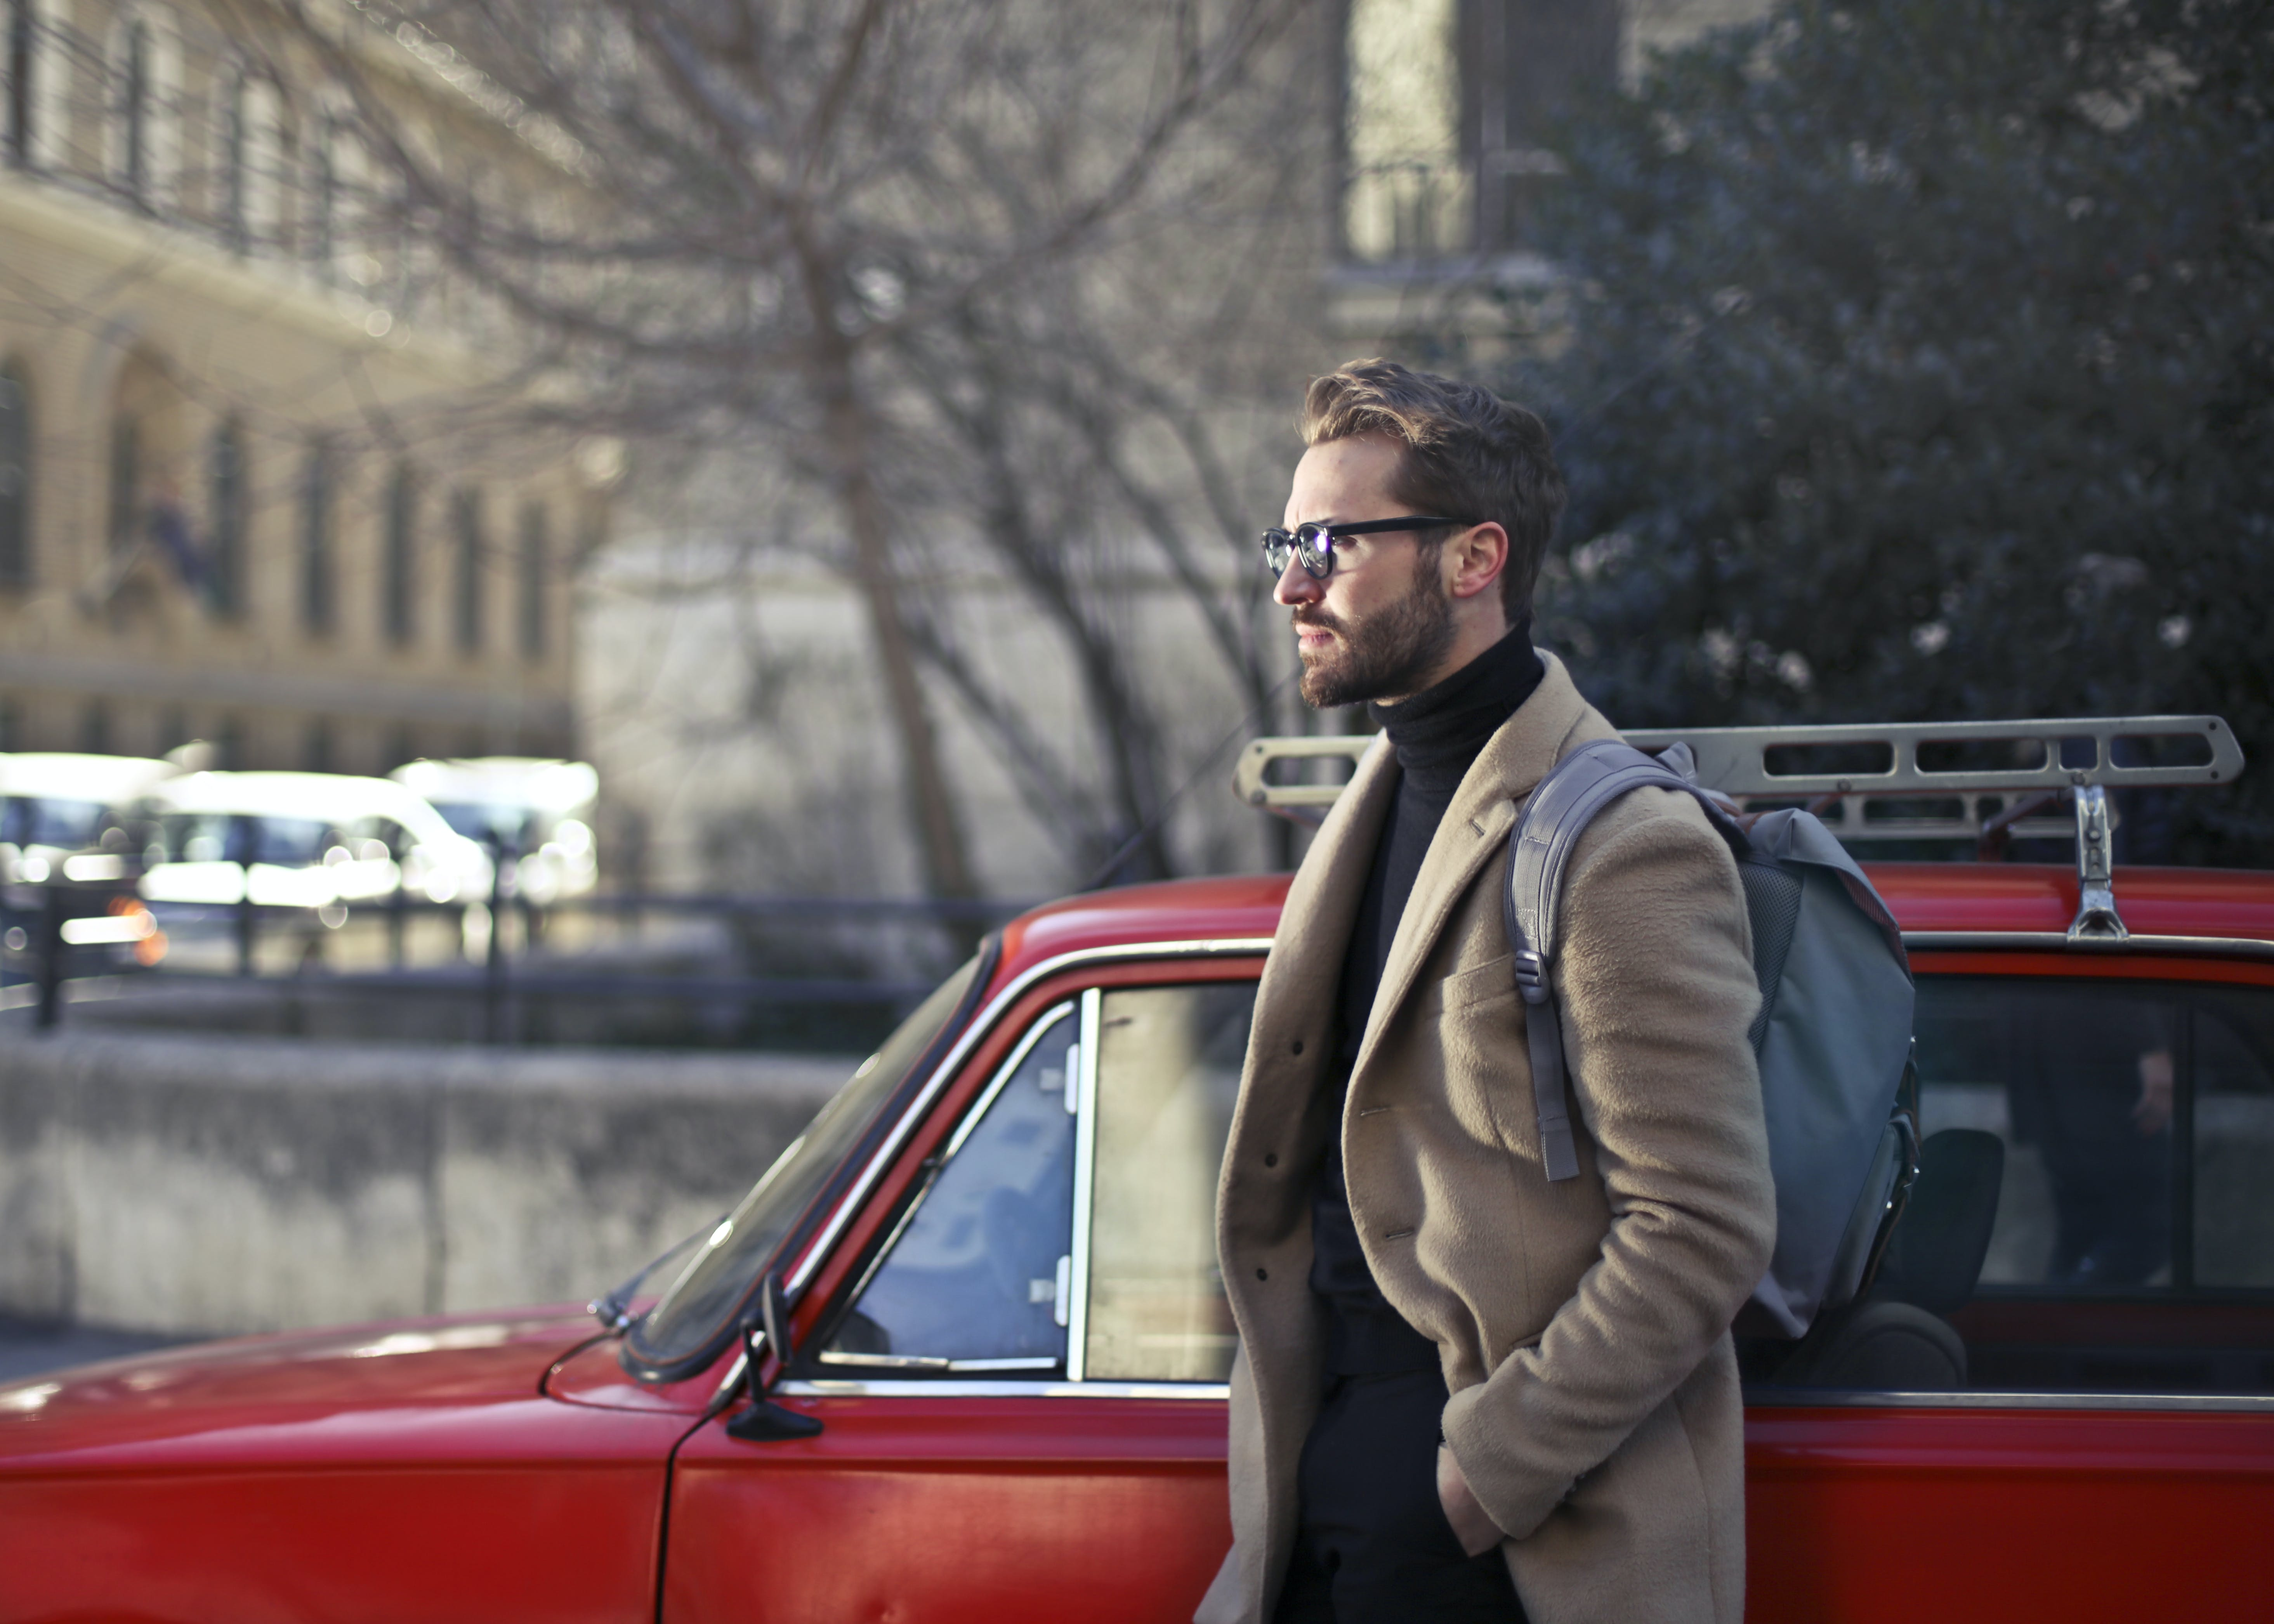 Man Wearing Beige Jacket Beside Red Car